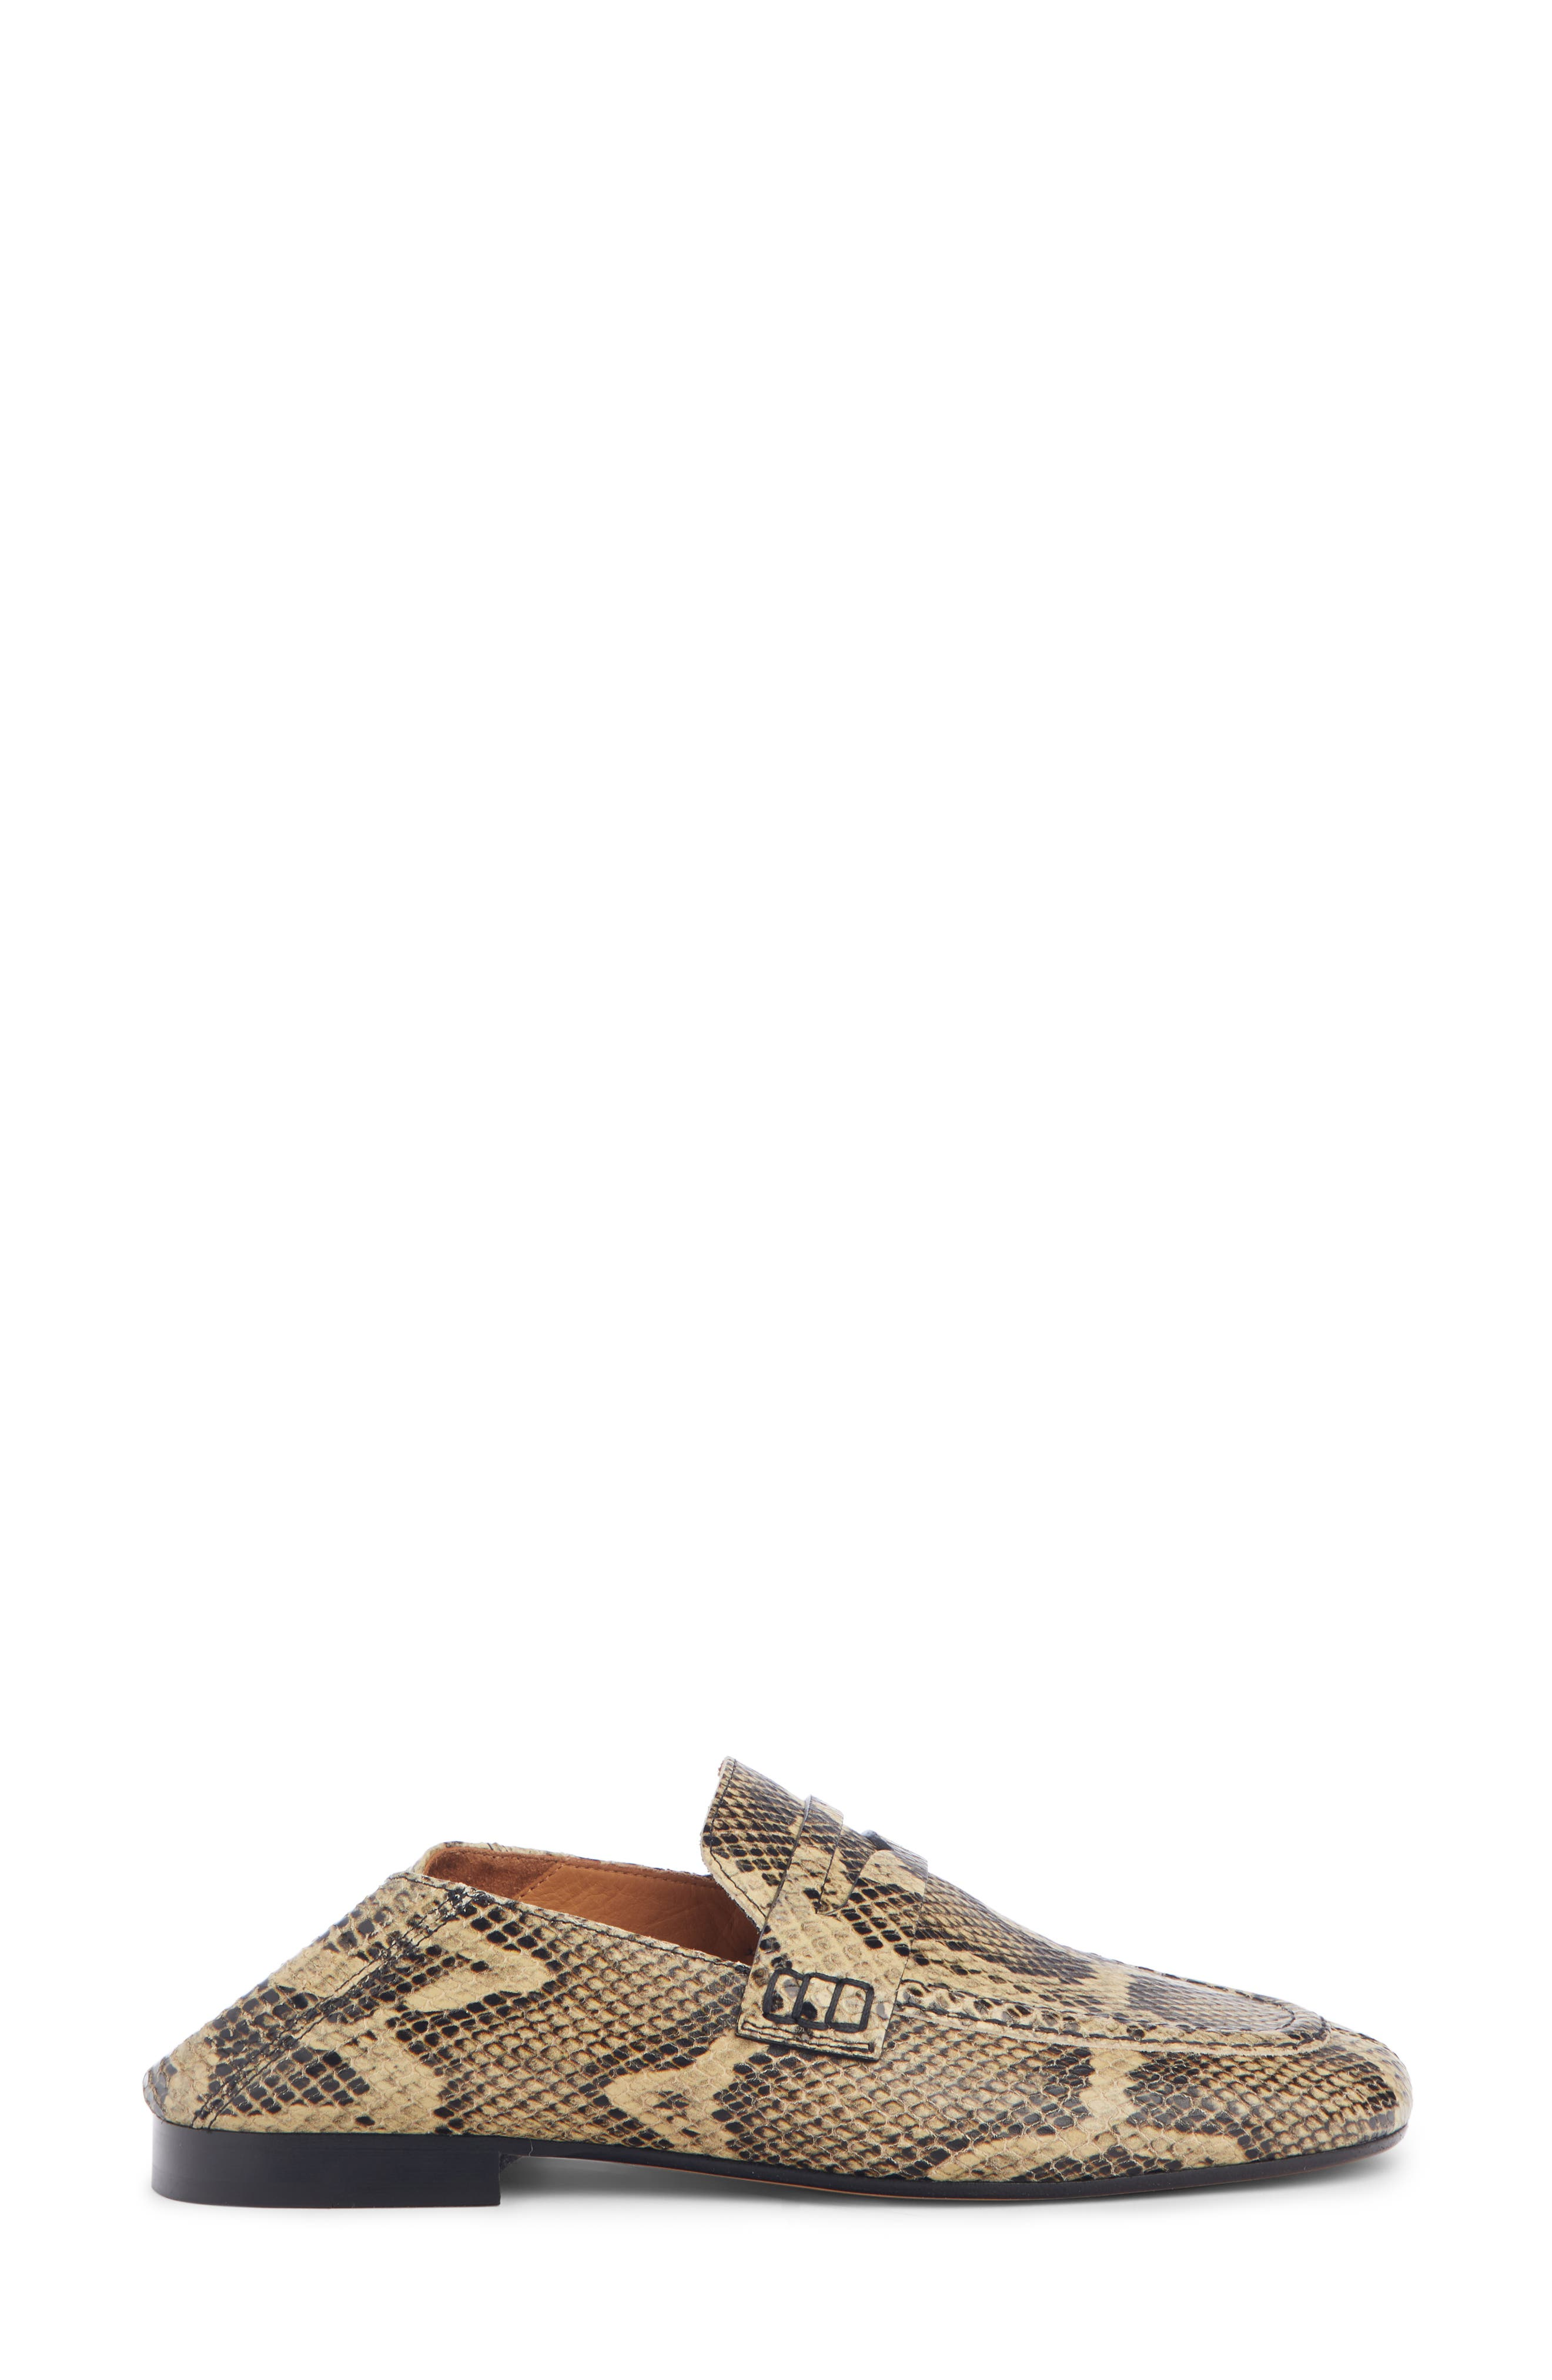 Fezzy Snakeskin Embossed Convertible Loafer,                             Alternate thumbnail 4, color,                             NATURAL EXOTIC